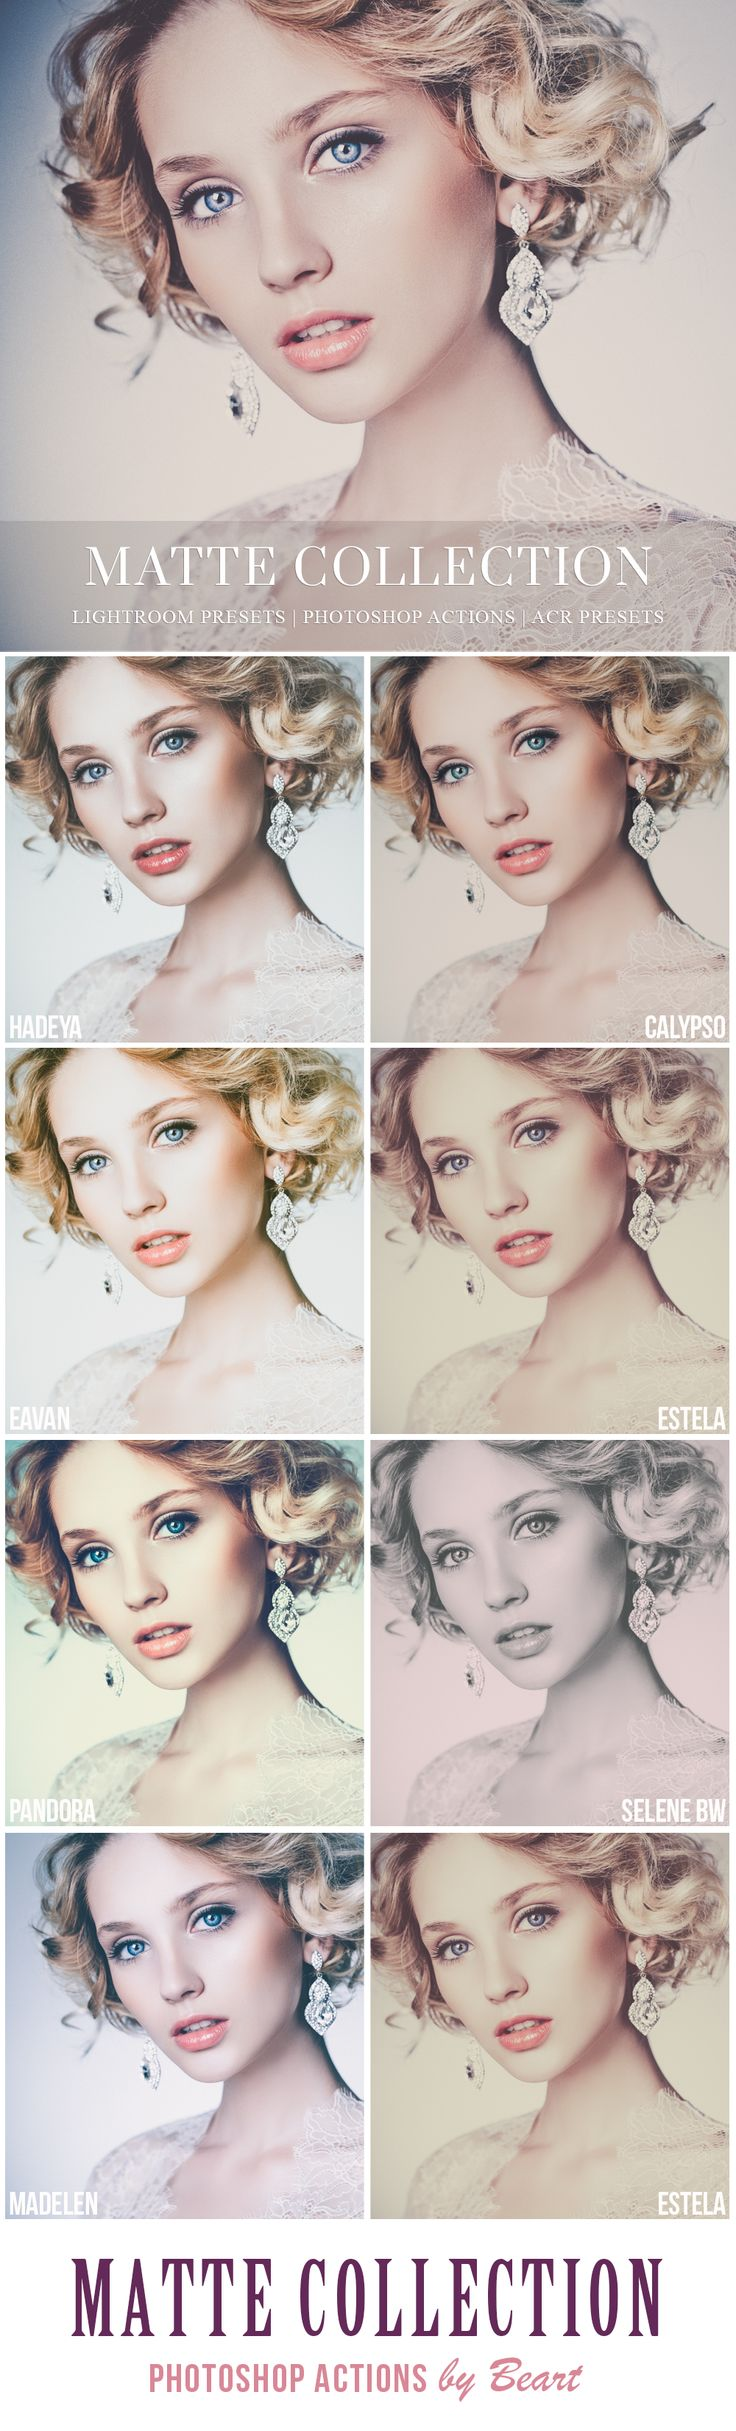 These Photoshop actions create the most perfect matte portraits from @BeArtpresets. Collection includes 40 stunning presets. Perfect for portrait and wedding photography | www.beart-presets.com